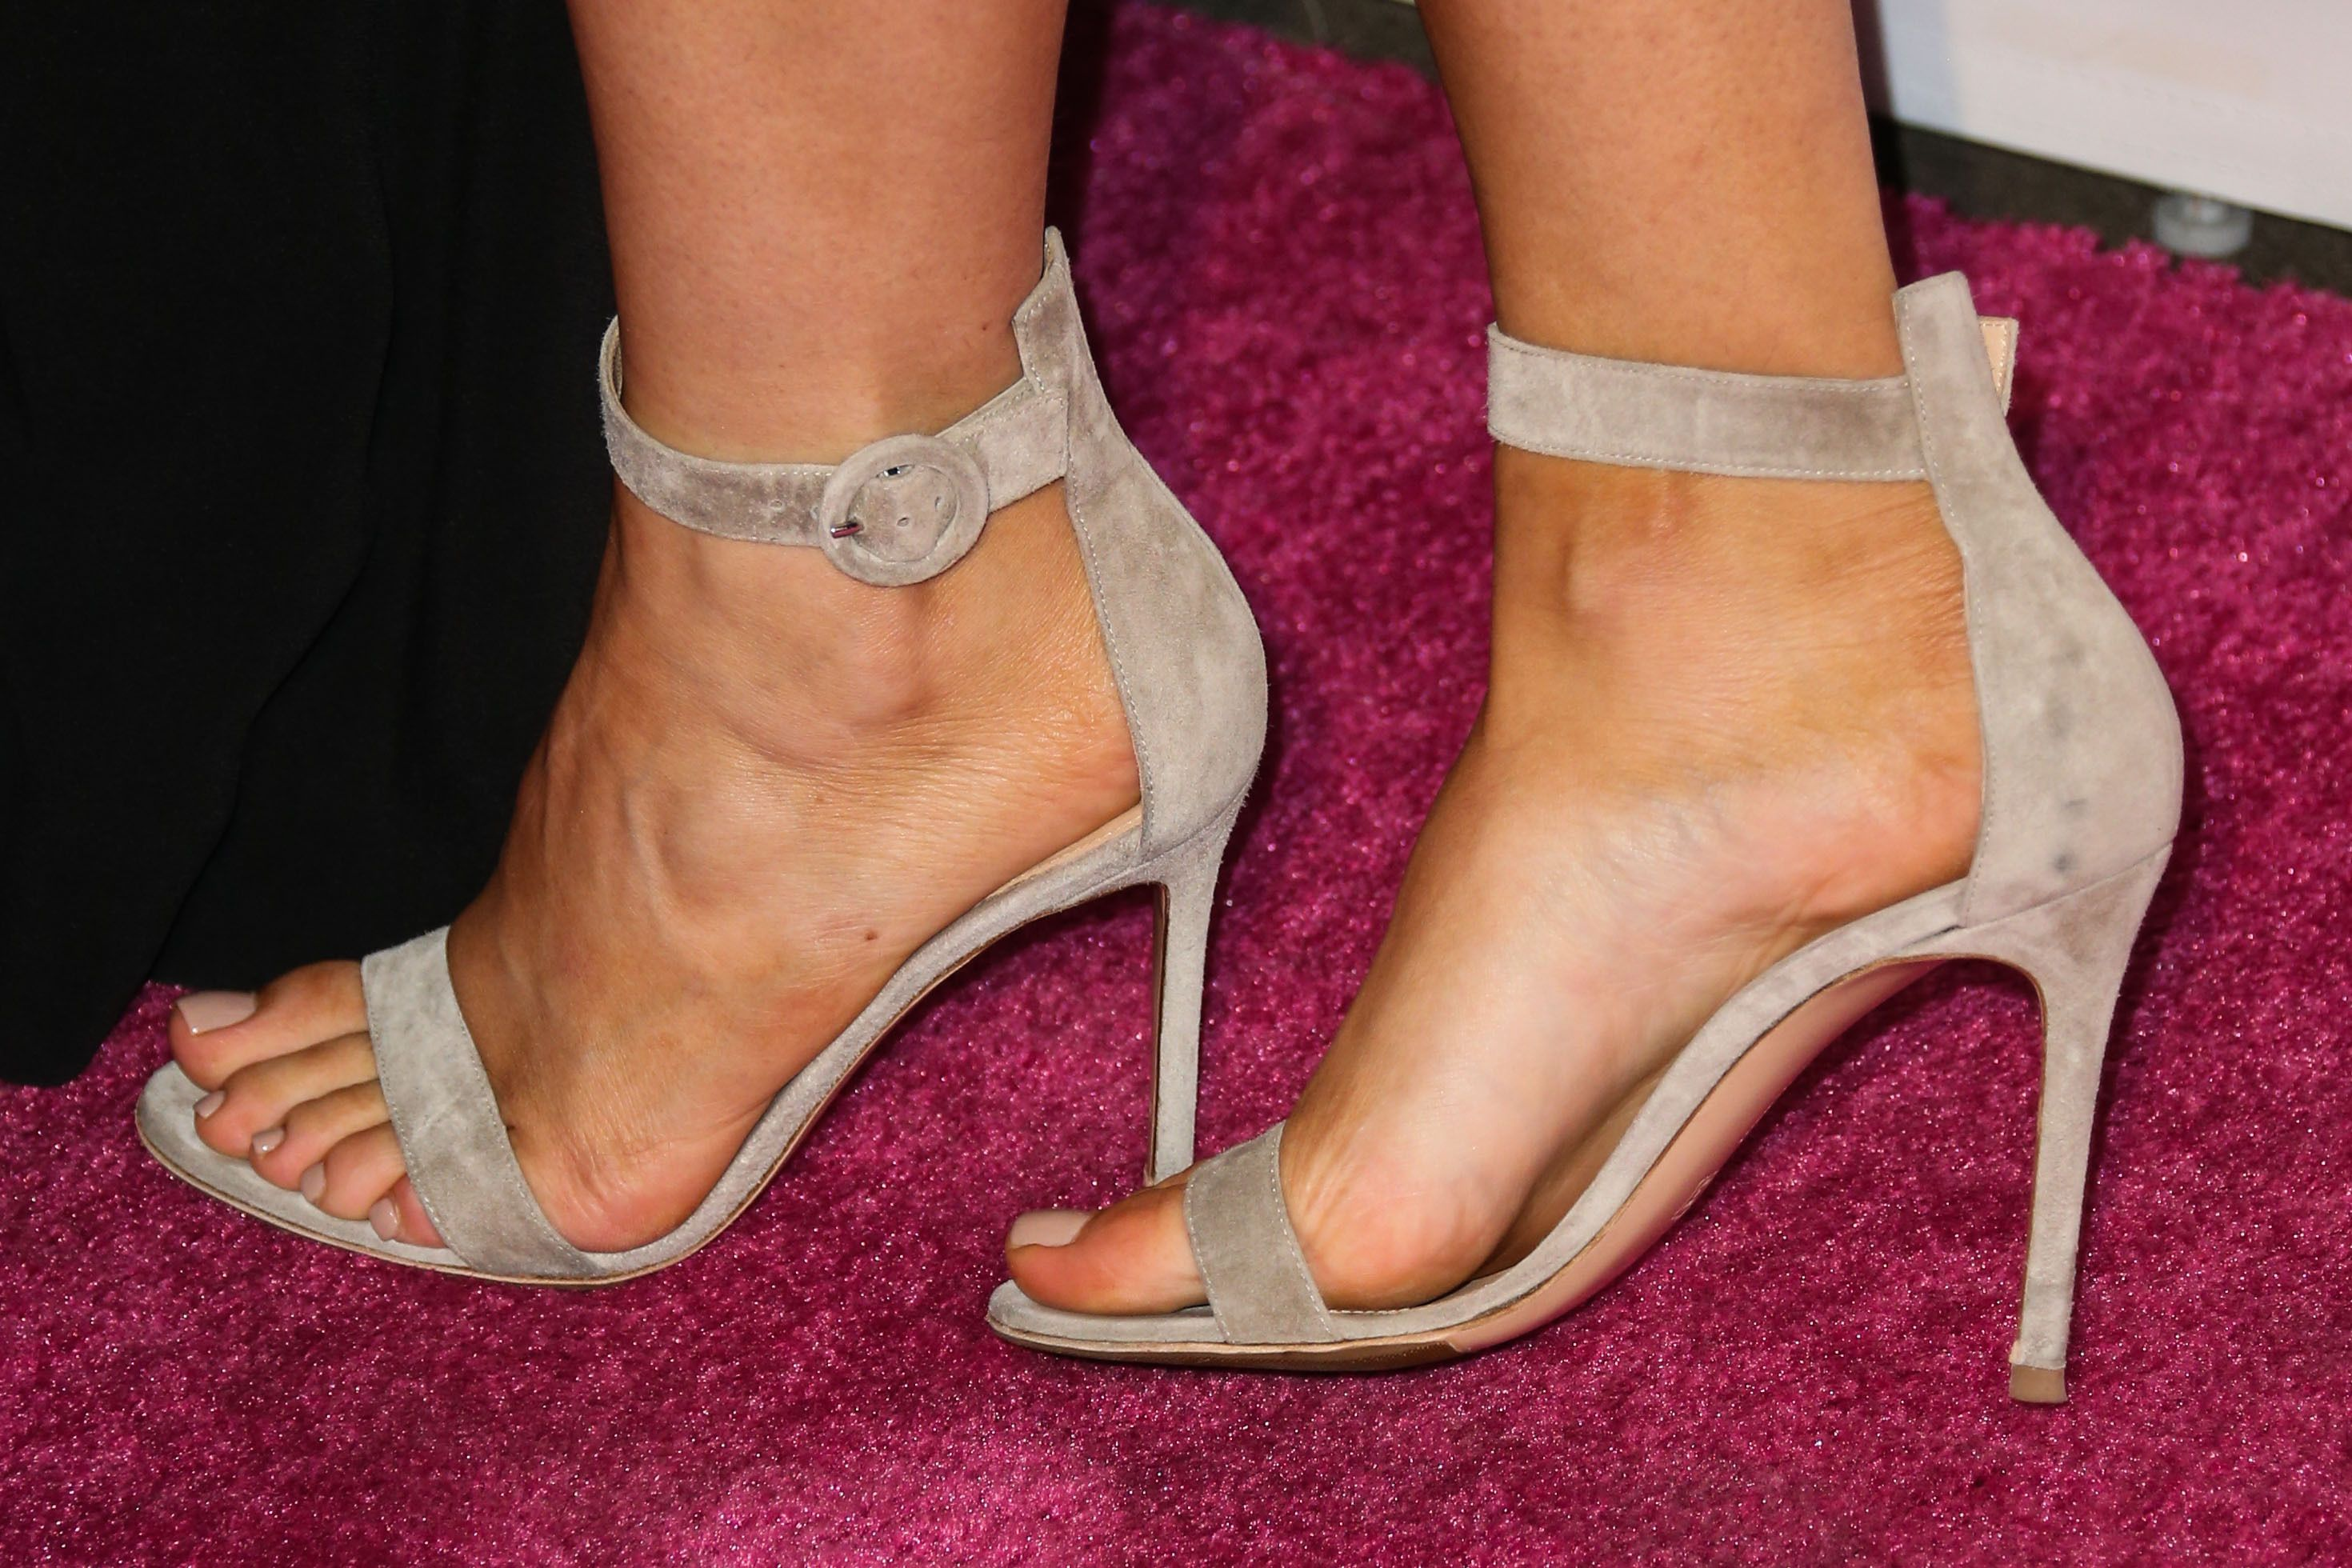 Top 10 Female Celebrity Sexiest Feet - TheTopTens®